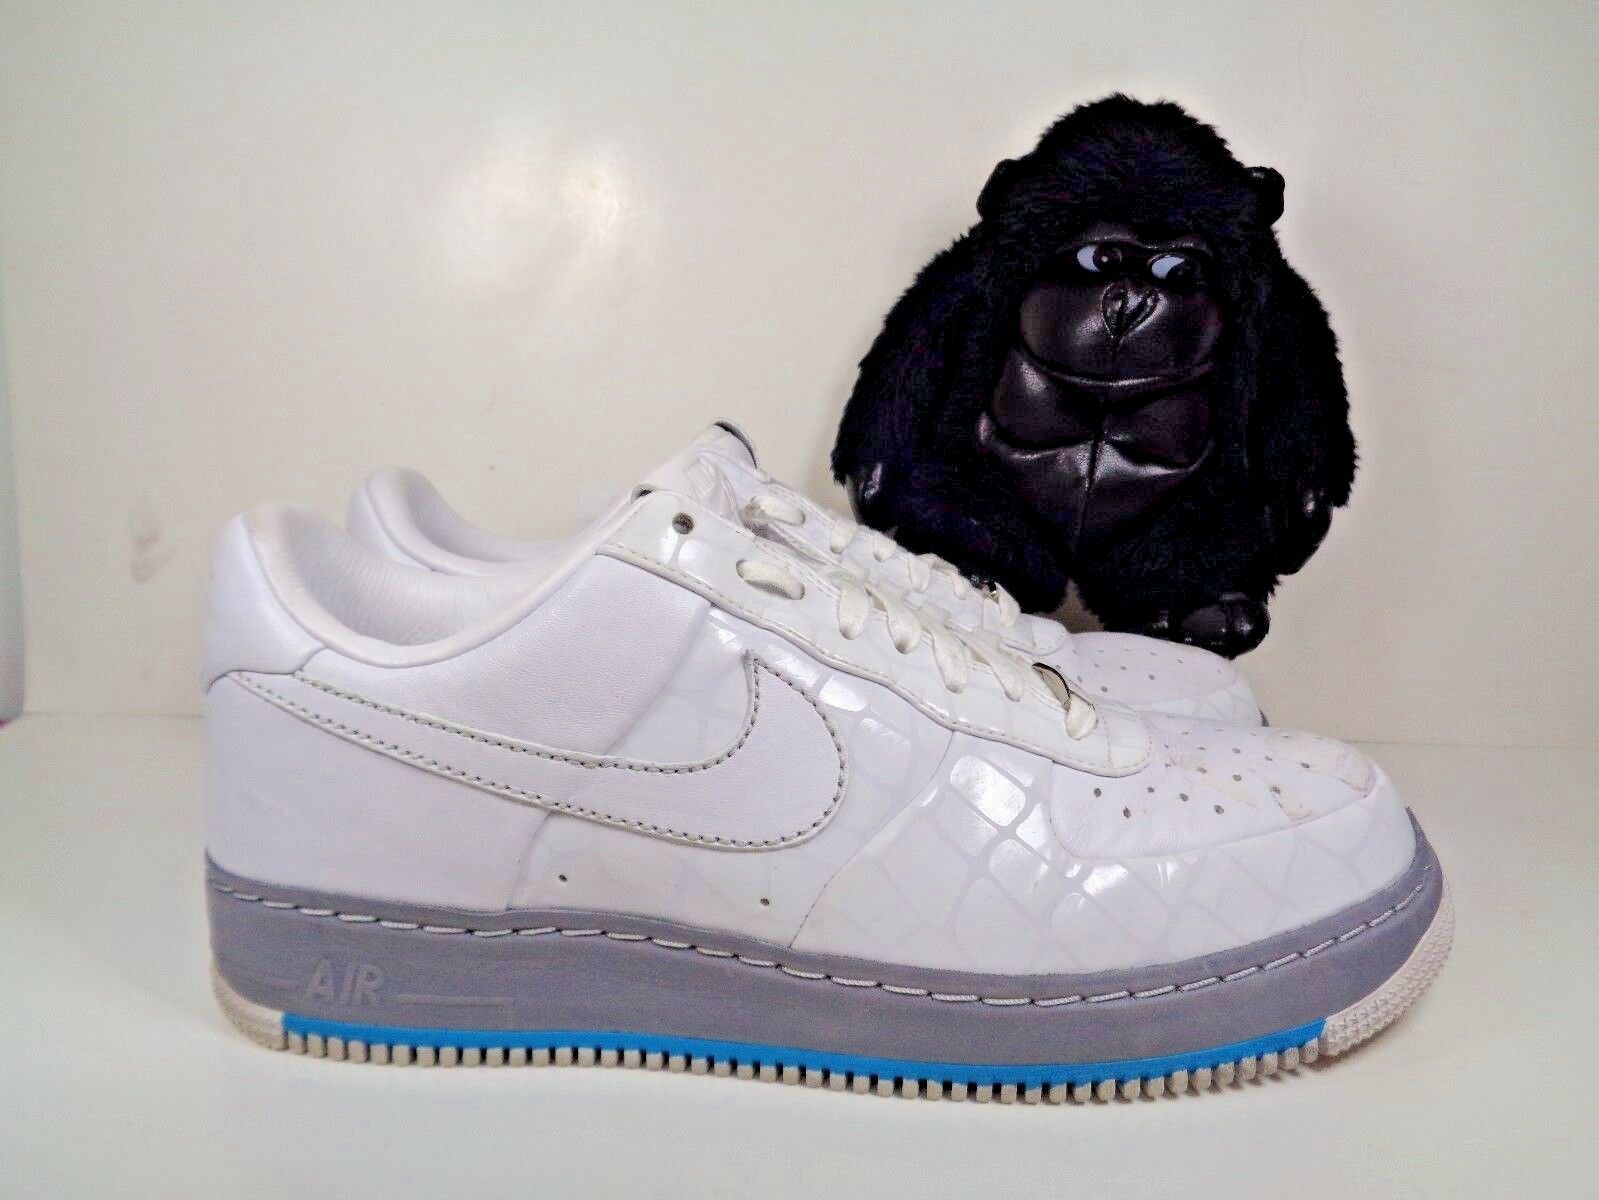 The latest discount shoes for men and women Mens Nike Air Force 1 Supreme '07 Rosies shoes size 11 US 316077-111 2007